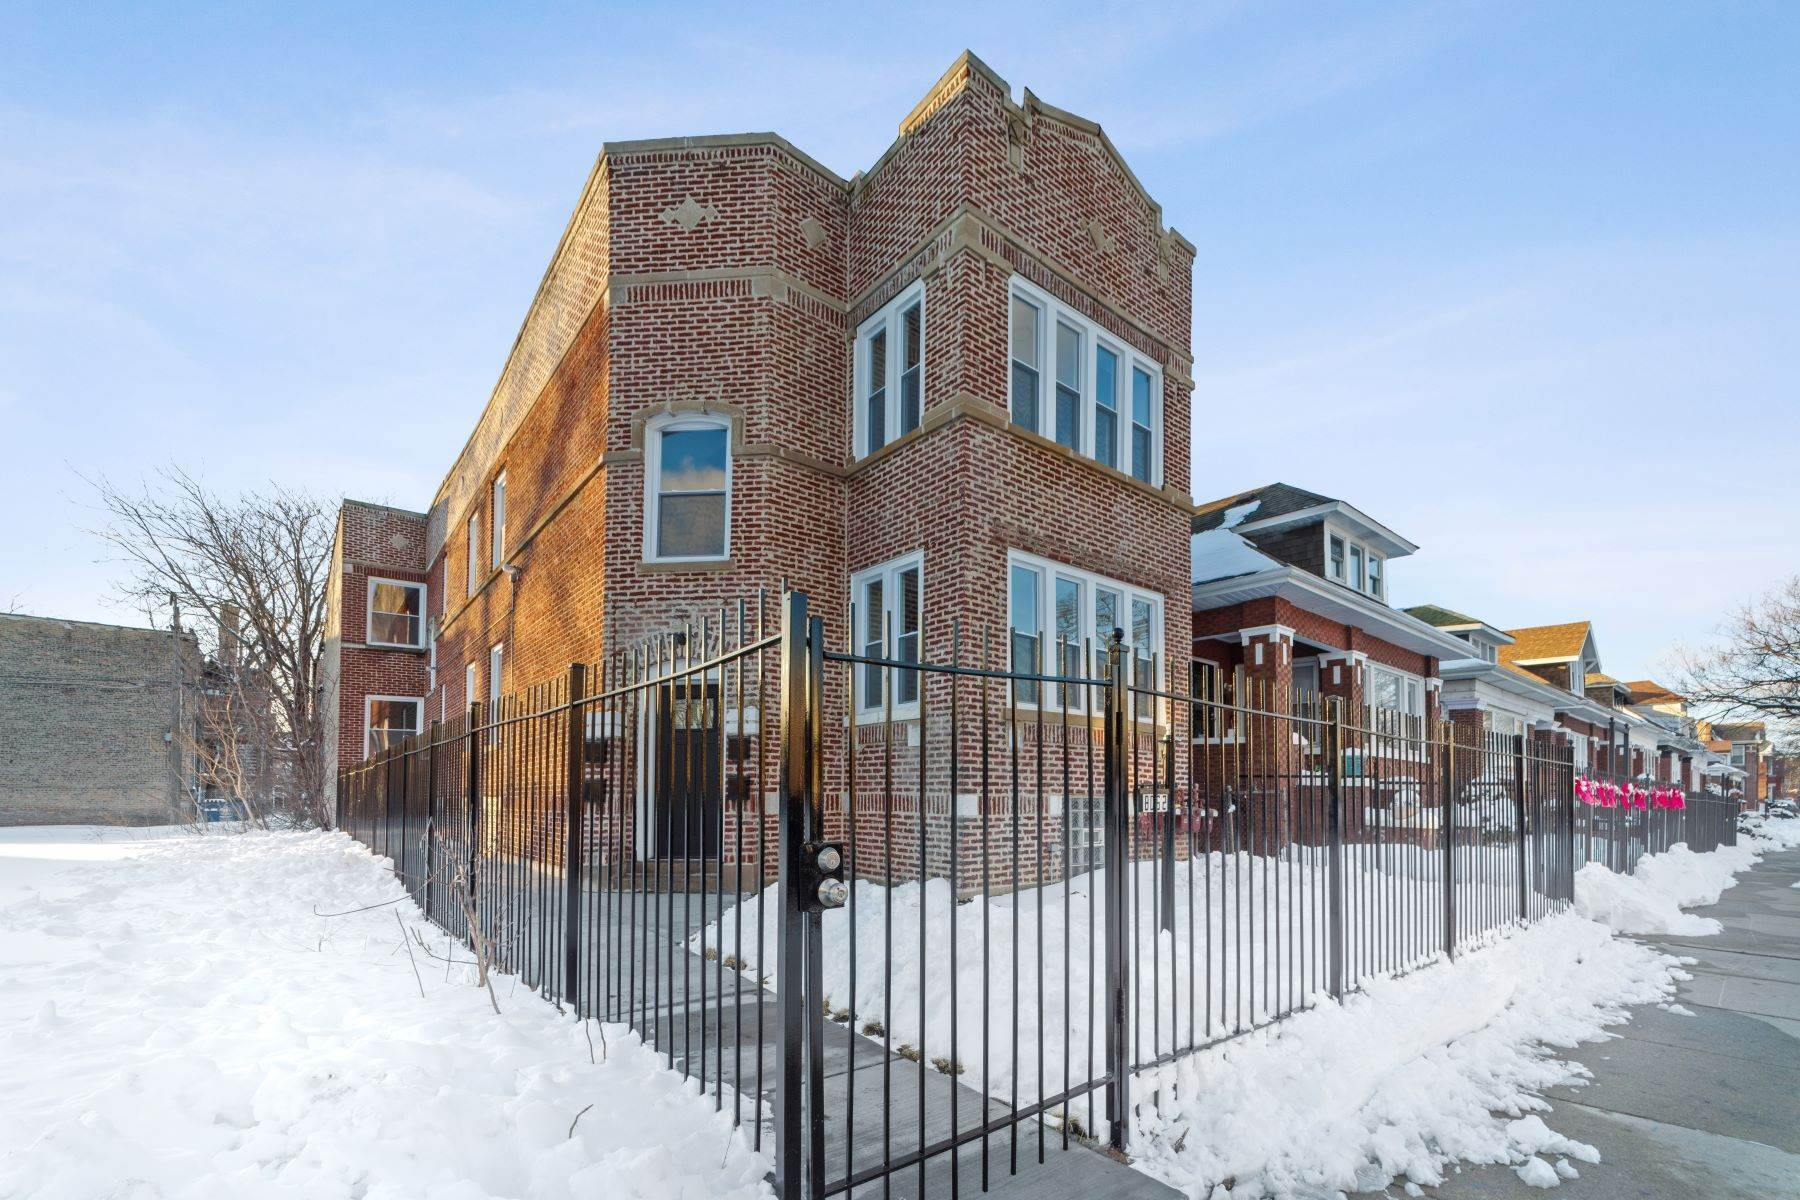 Property for Sale at Recently Rehabbed Auburn Greshan 4-Flat 8052 S Elizabeth Street Chicago, Illinois 60620 United States